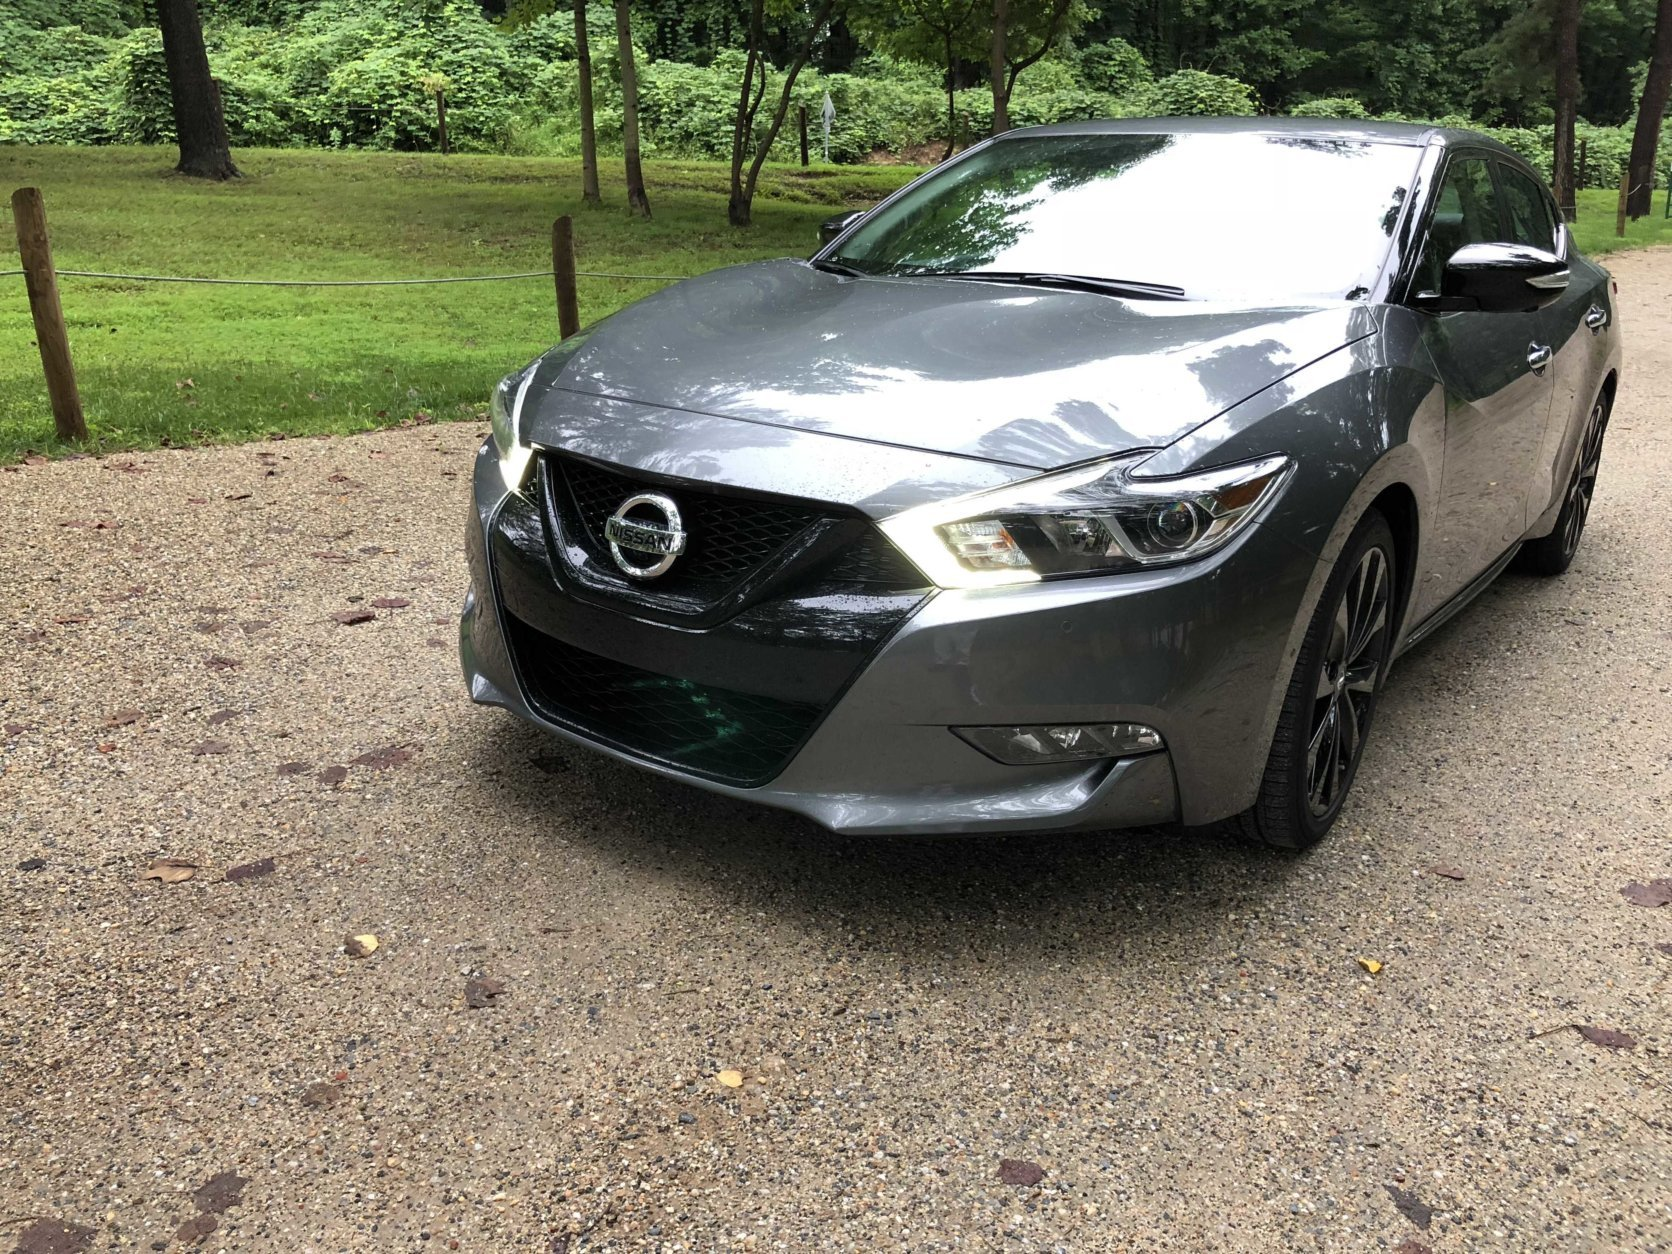 Car Review Want A Large Sedan At A Great Price Outgoing 2018 Maxima Fits The Bill Wtop